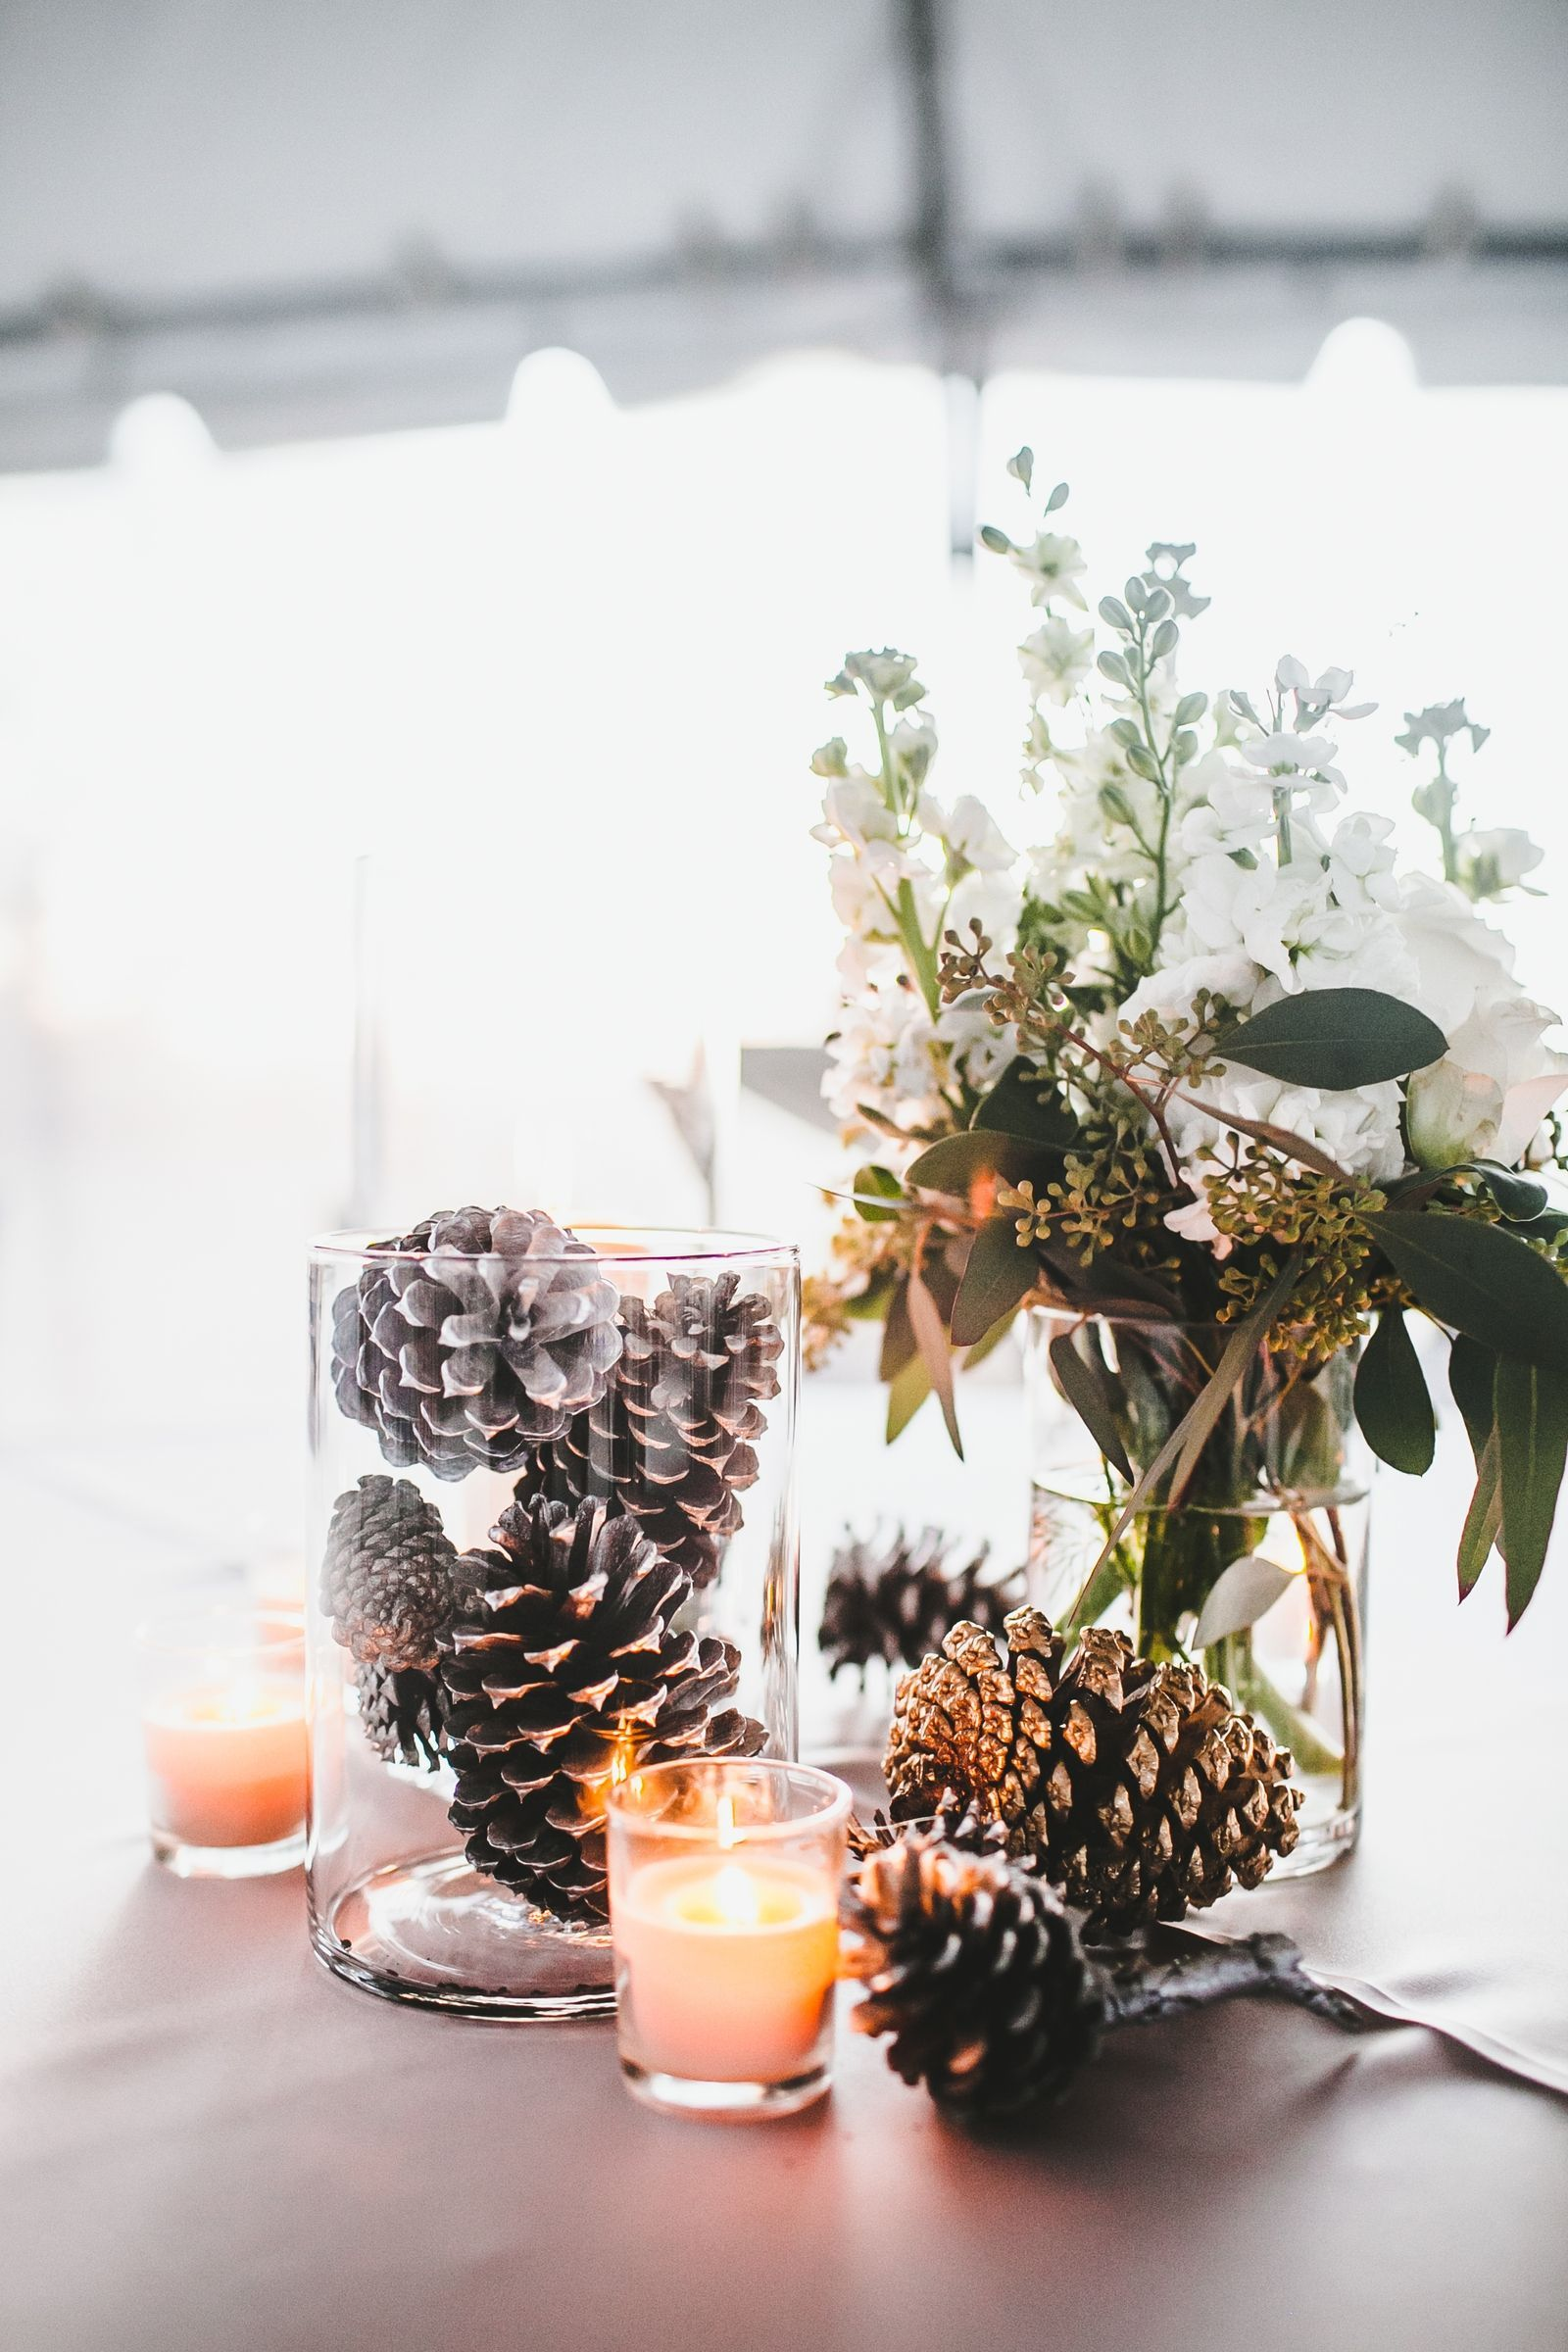 16 Rustic Centerpieces To Make Your Holiday Table Twinkle ...